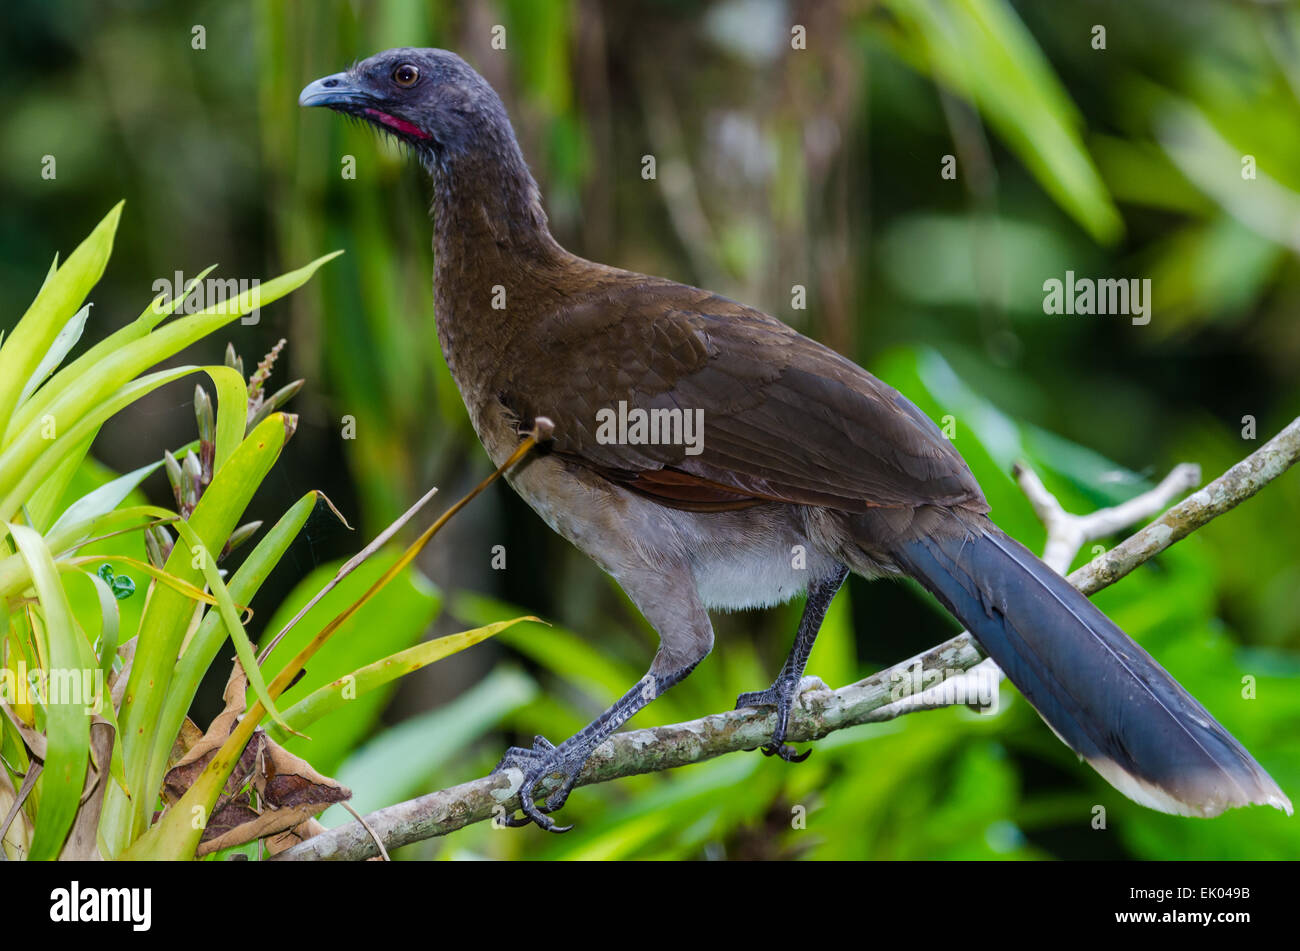 A Grey-headed Chachalaca (Ortalis cinereiceps) - Stock Image